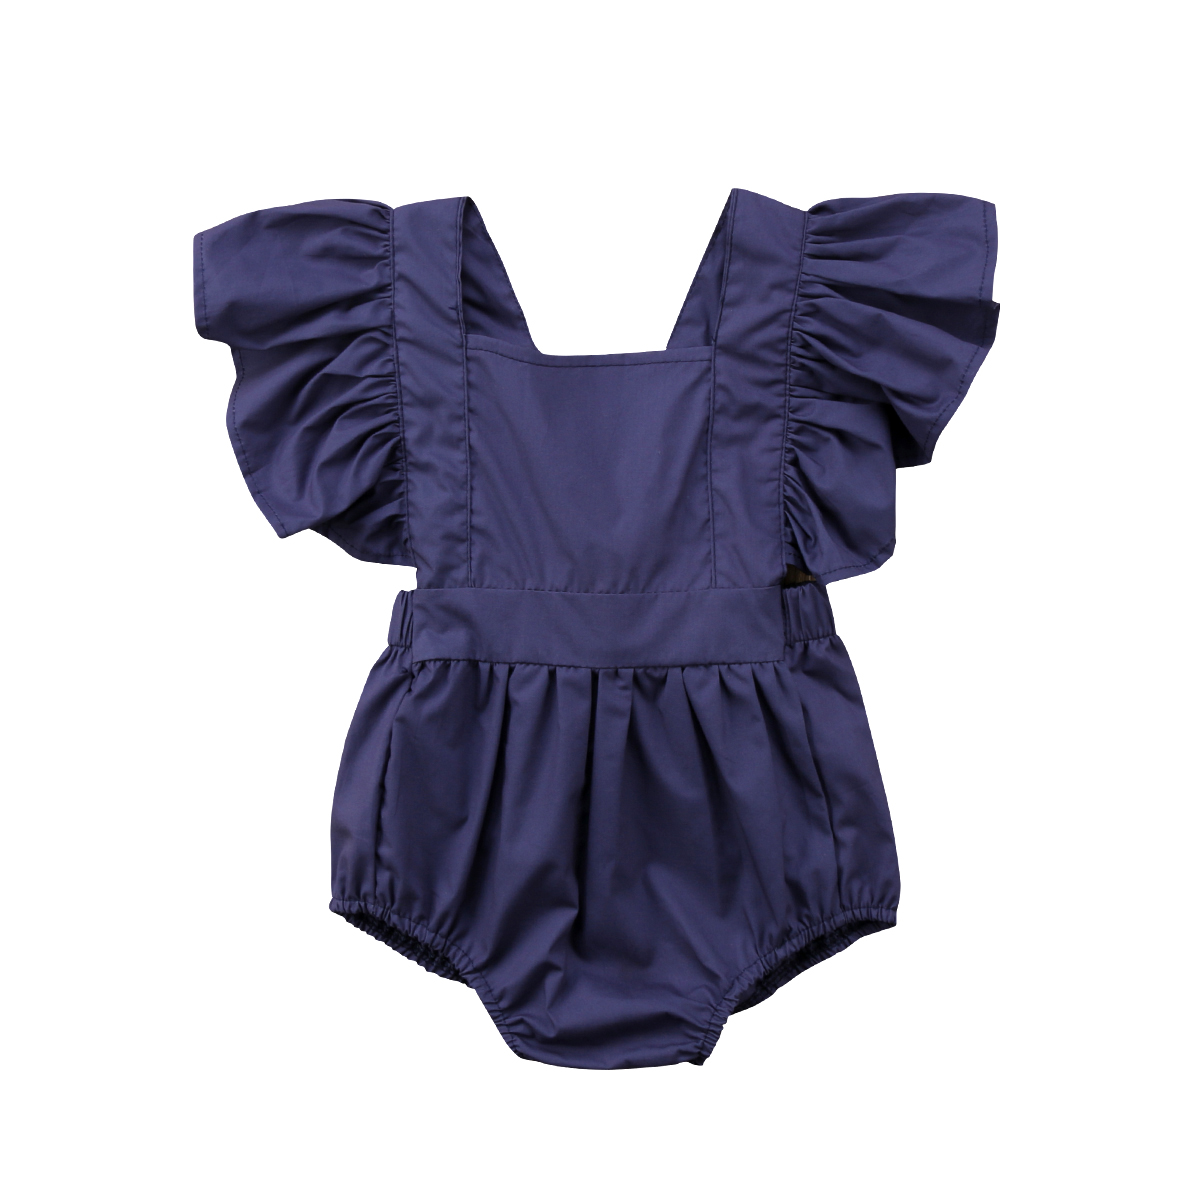 Cute Newborn Toddled Kids Baby Girls Clothes Flying Sleeve Solid Casual Jumpsuit Romper Sunsuit Summer Outfits 0-24M